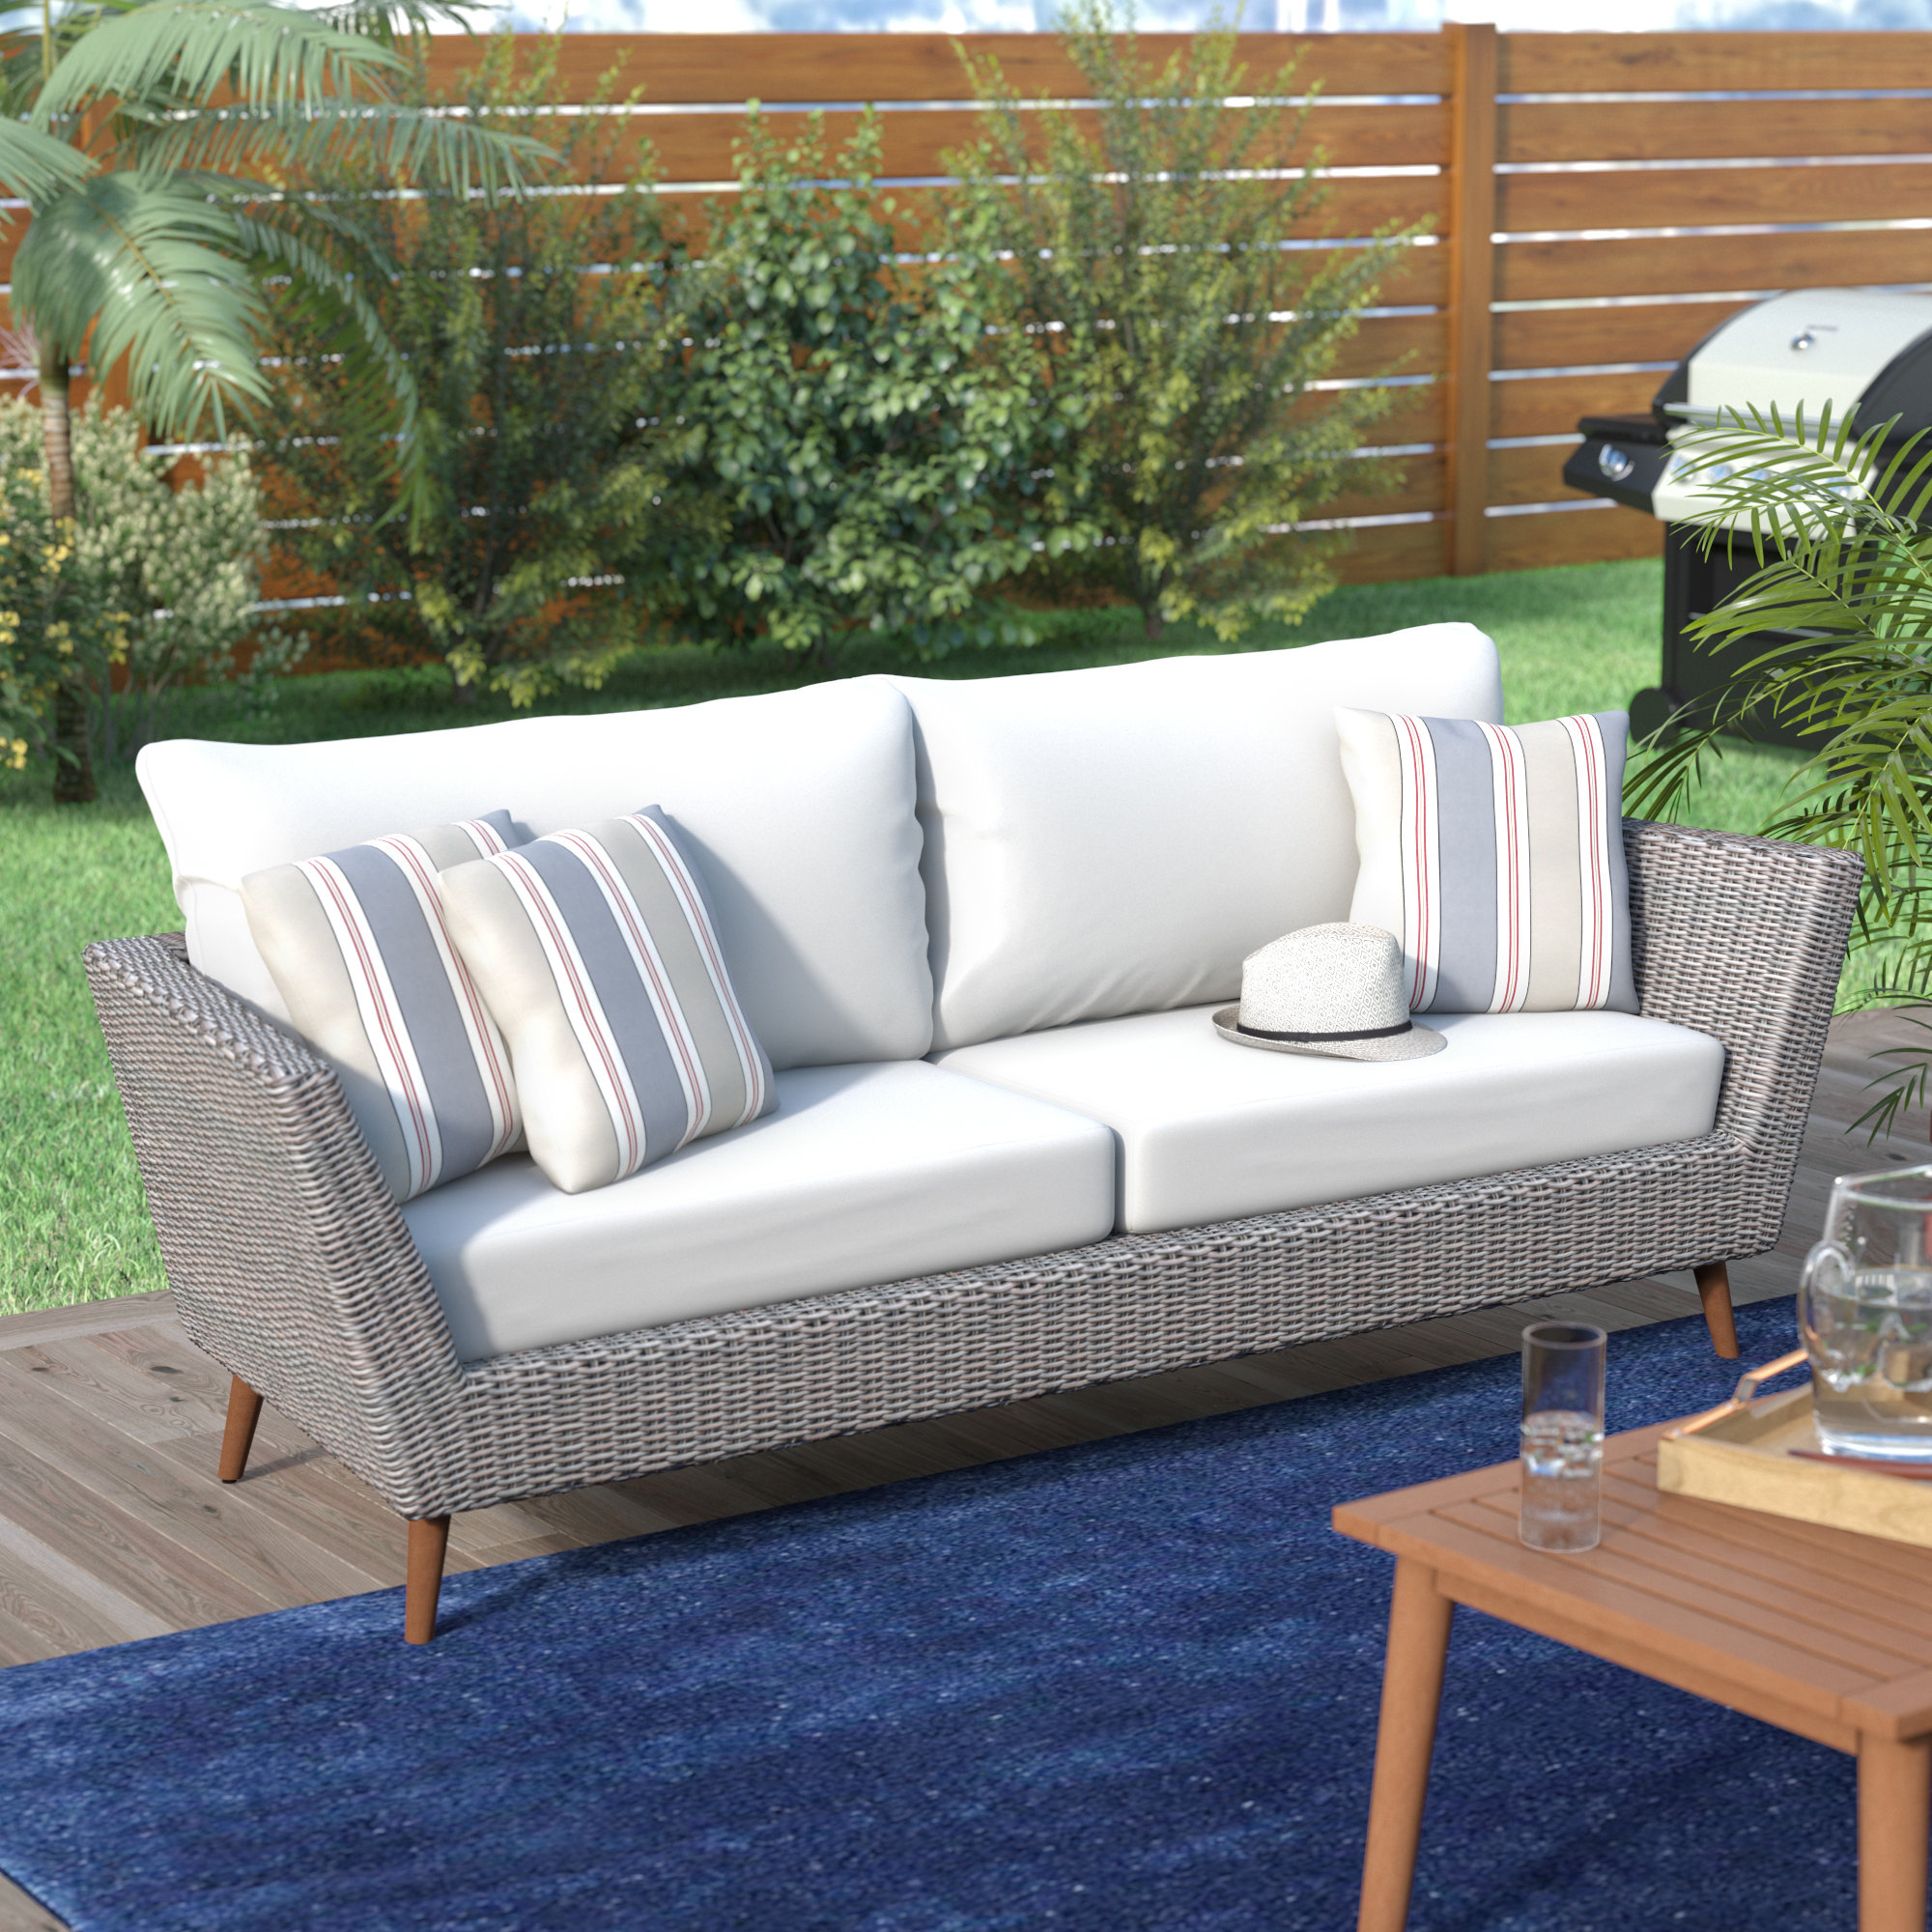 Newbury Patio Sofas With Cushions Within Newest Newbury Patio Sofa With Cushions (Gallery 1 of 20)